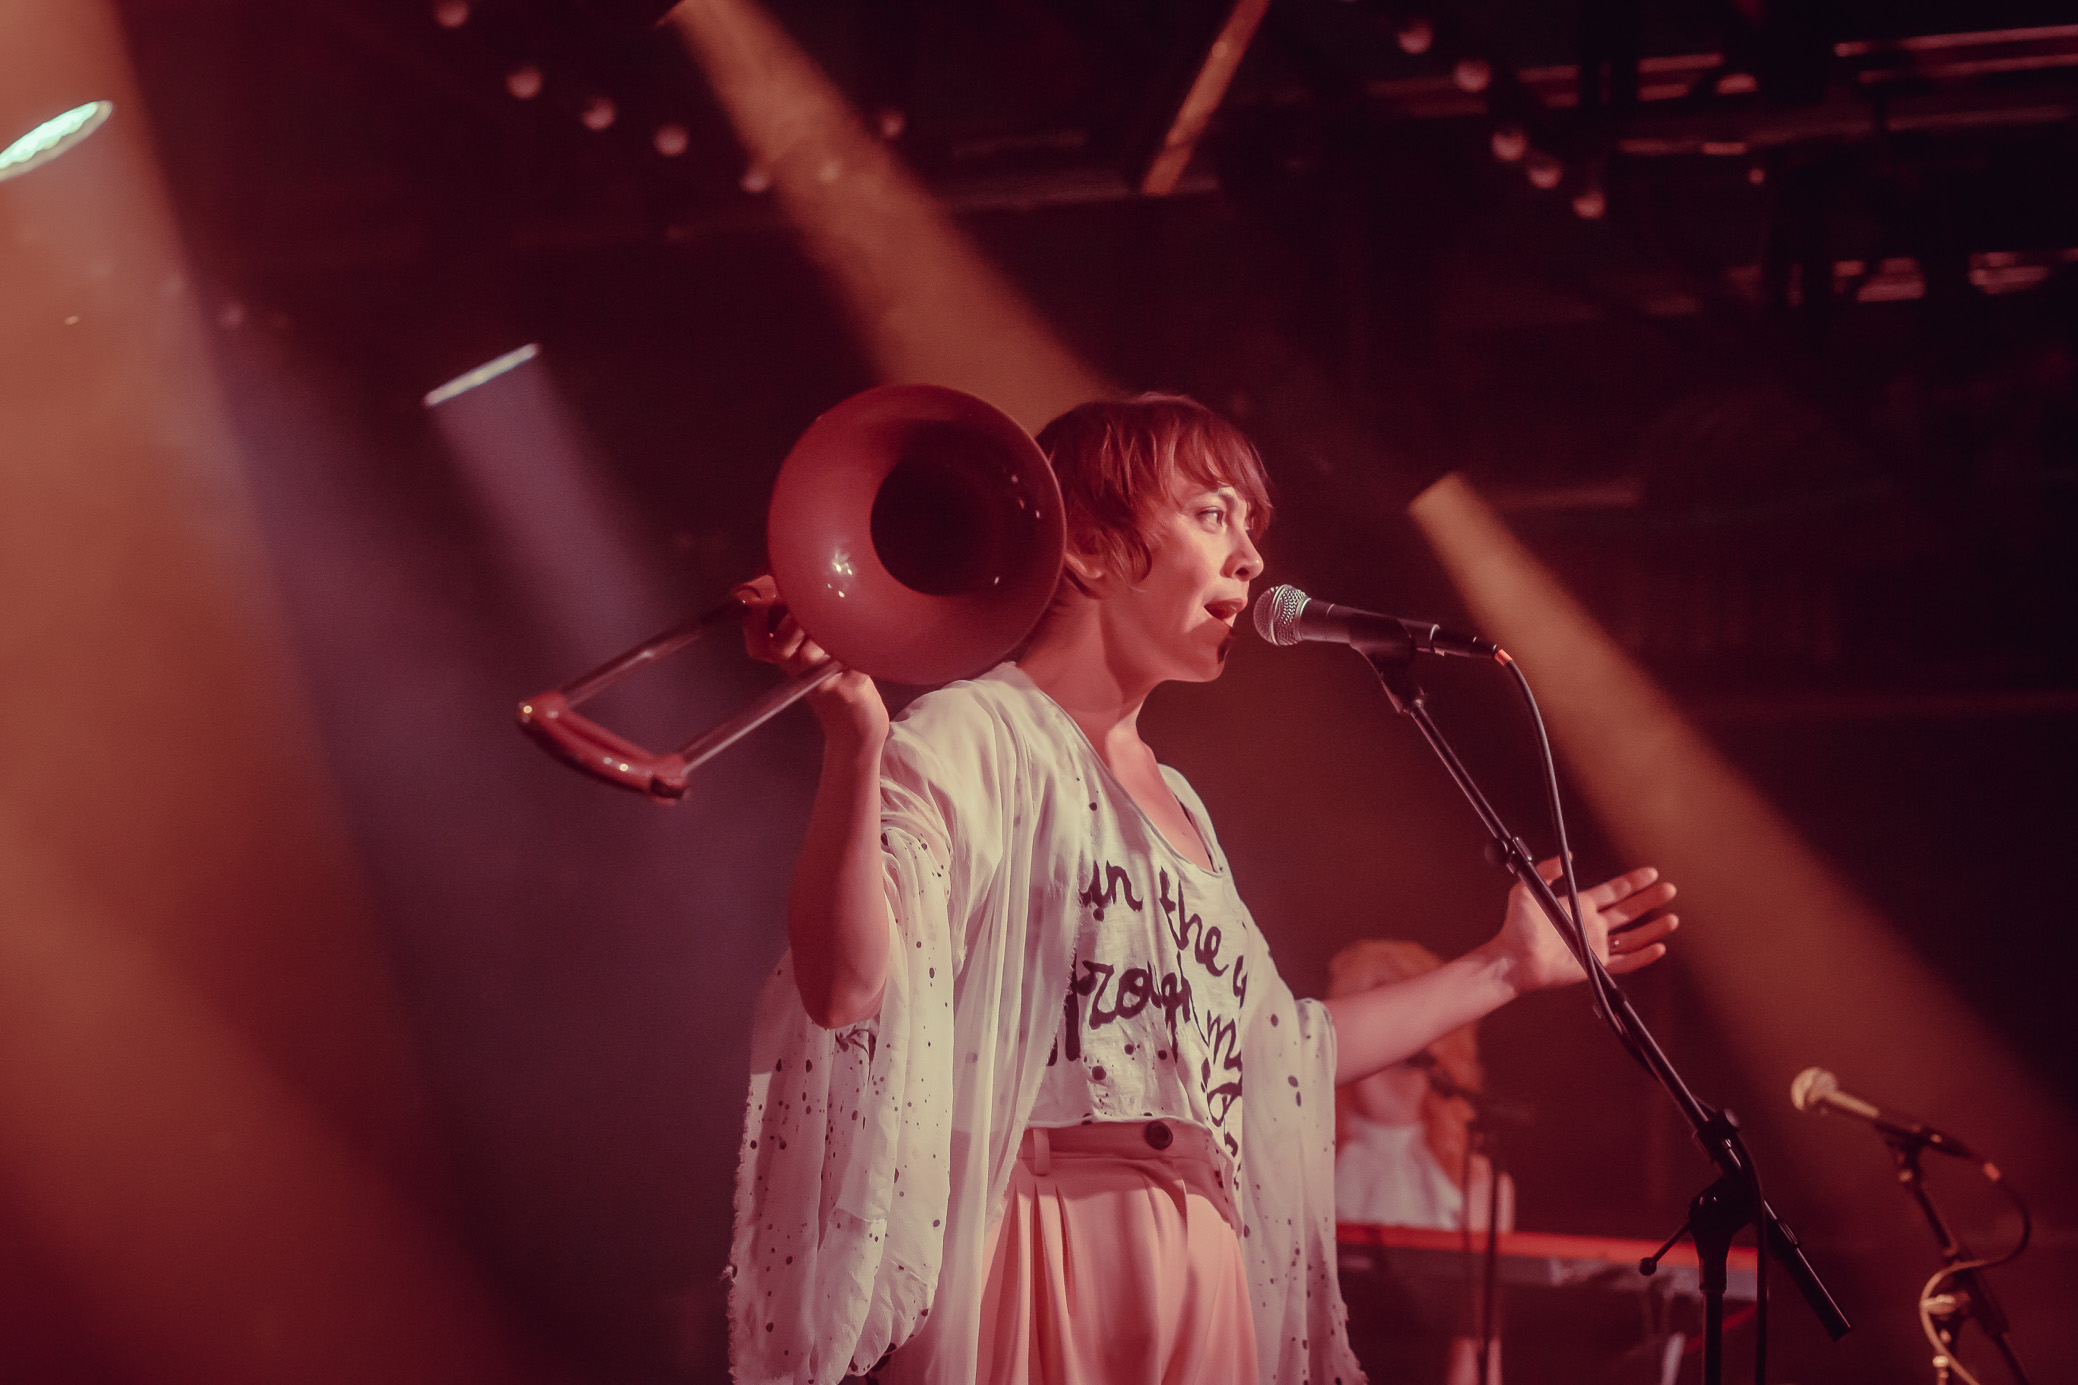 The Bird and The Bee perform in concert at Saturn Birmingham in Birmingham, Alabama on August 22nd, 2019. (Photo by David A. Smith / DSmithScenes)